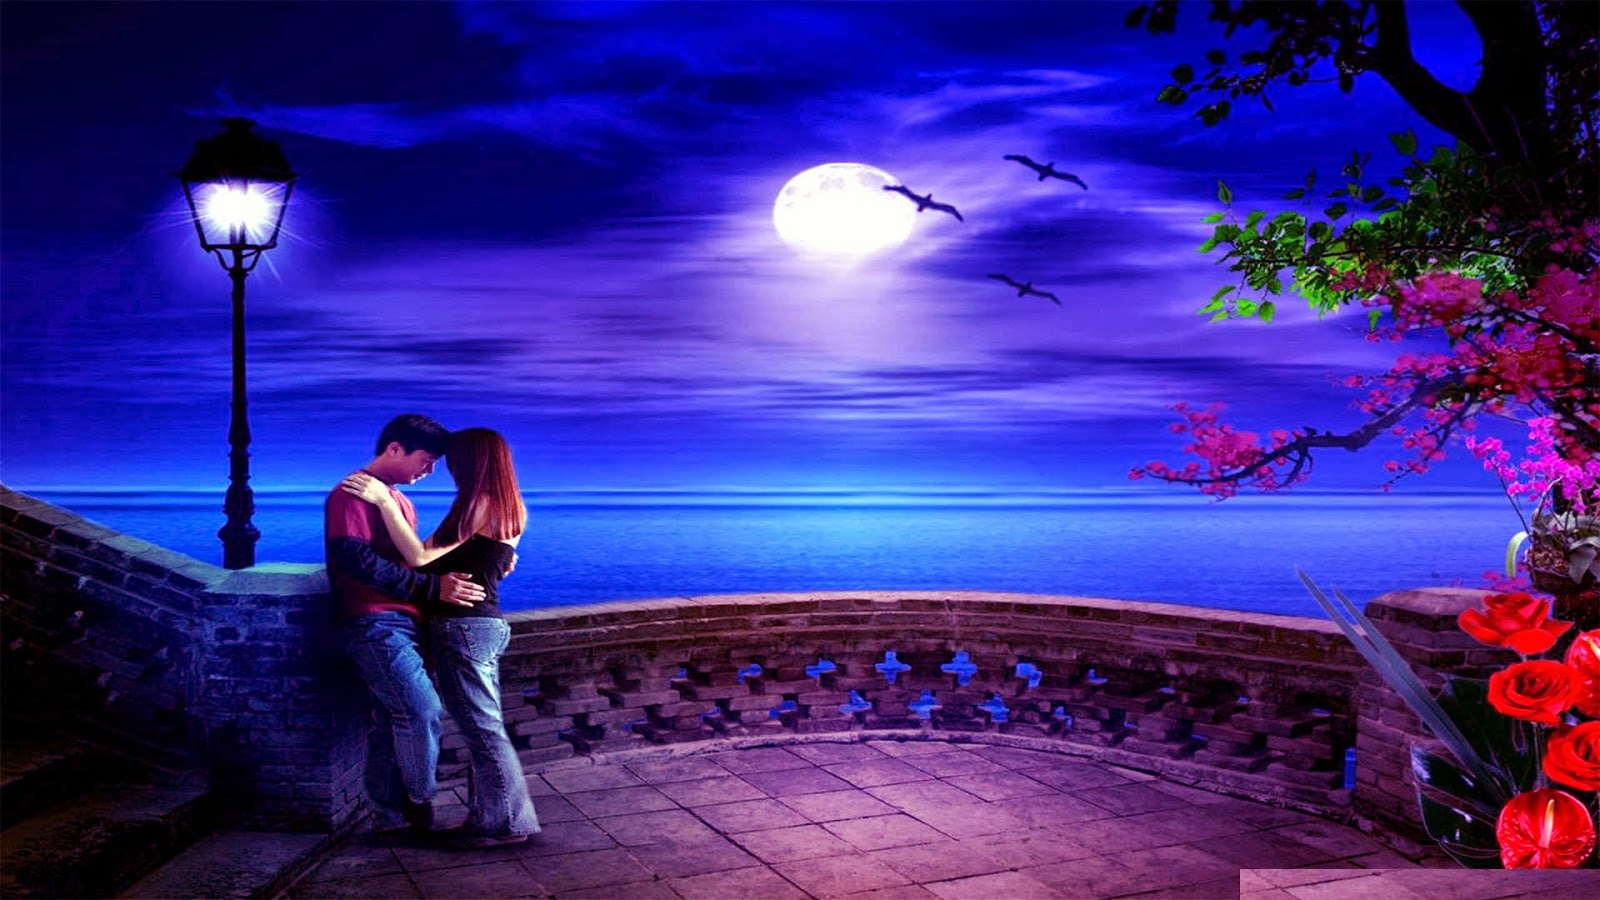 romantic cartoon image hd